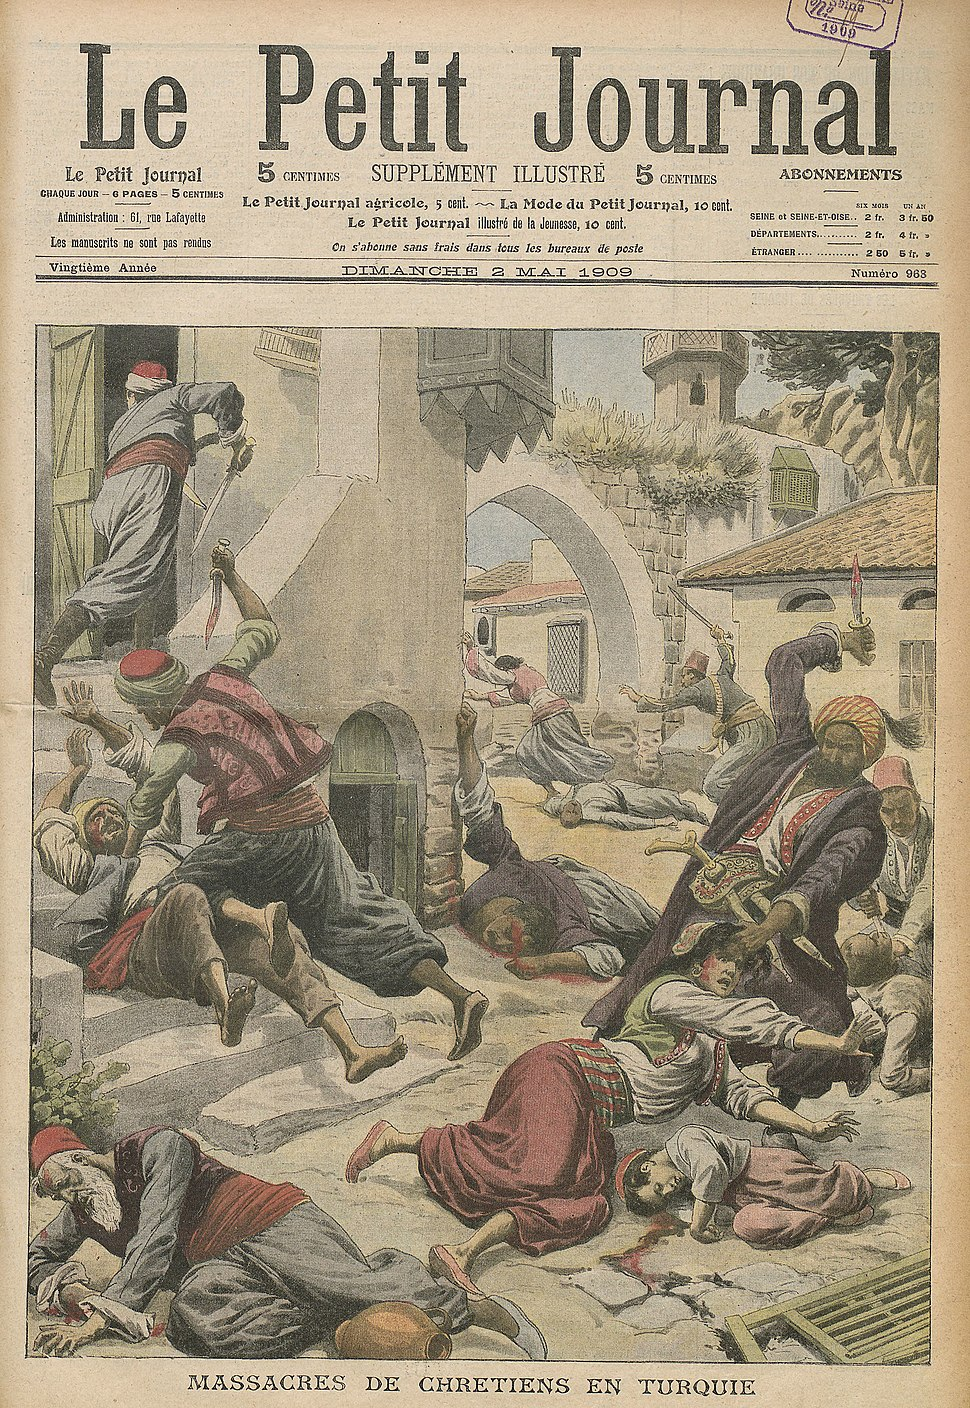 Adana massacre in Le Petit Journal (1909)